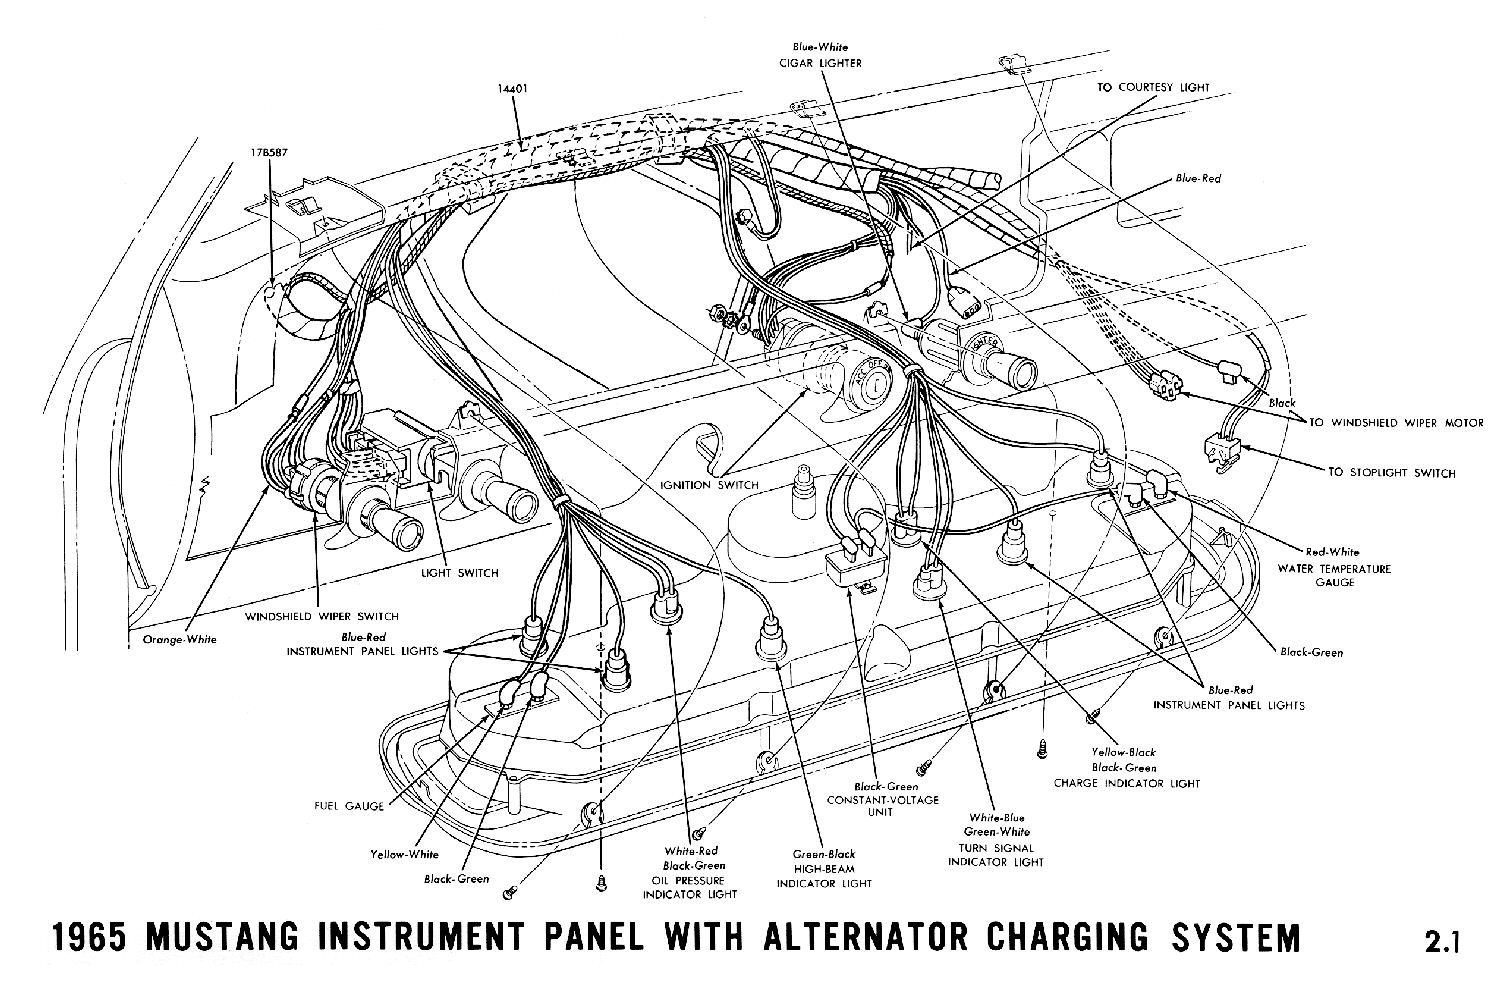 65 Mustang Engine Wiring Diagram Auto Electrical 1969 Voltage Regulator 1964 Ford